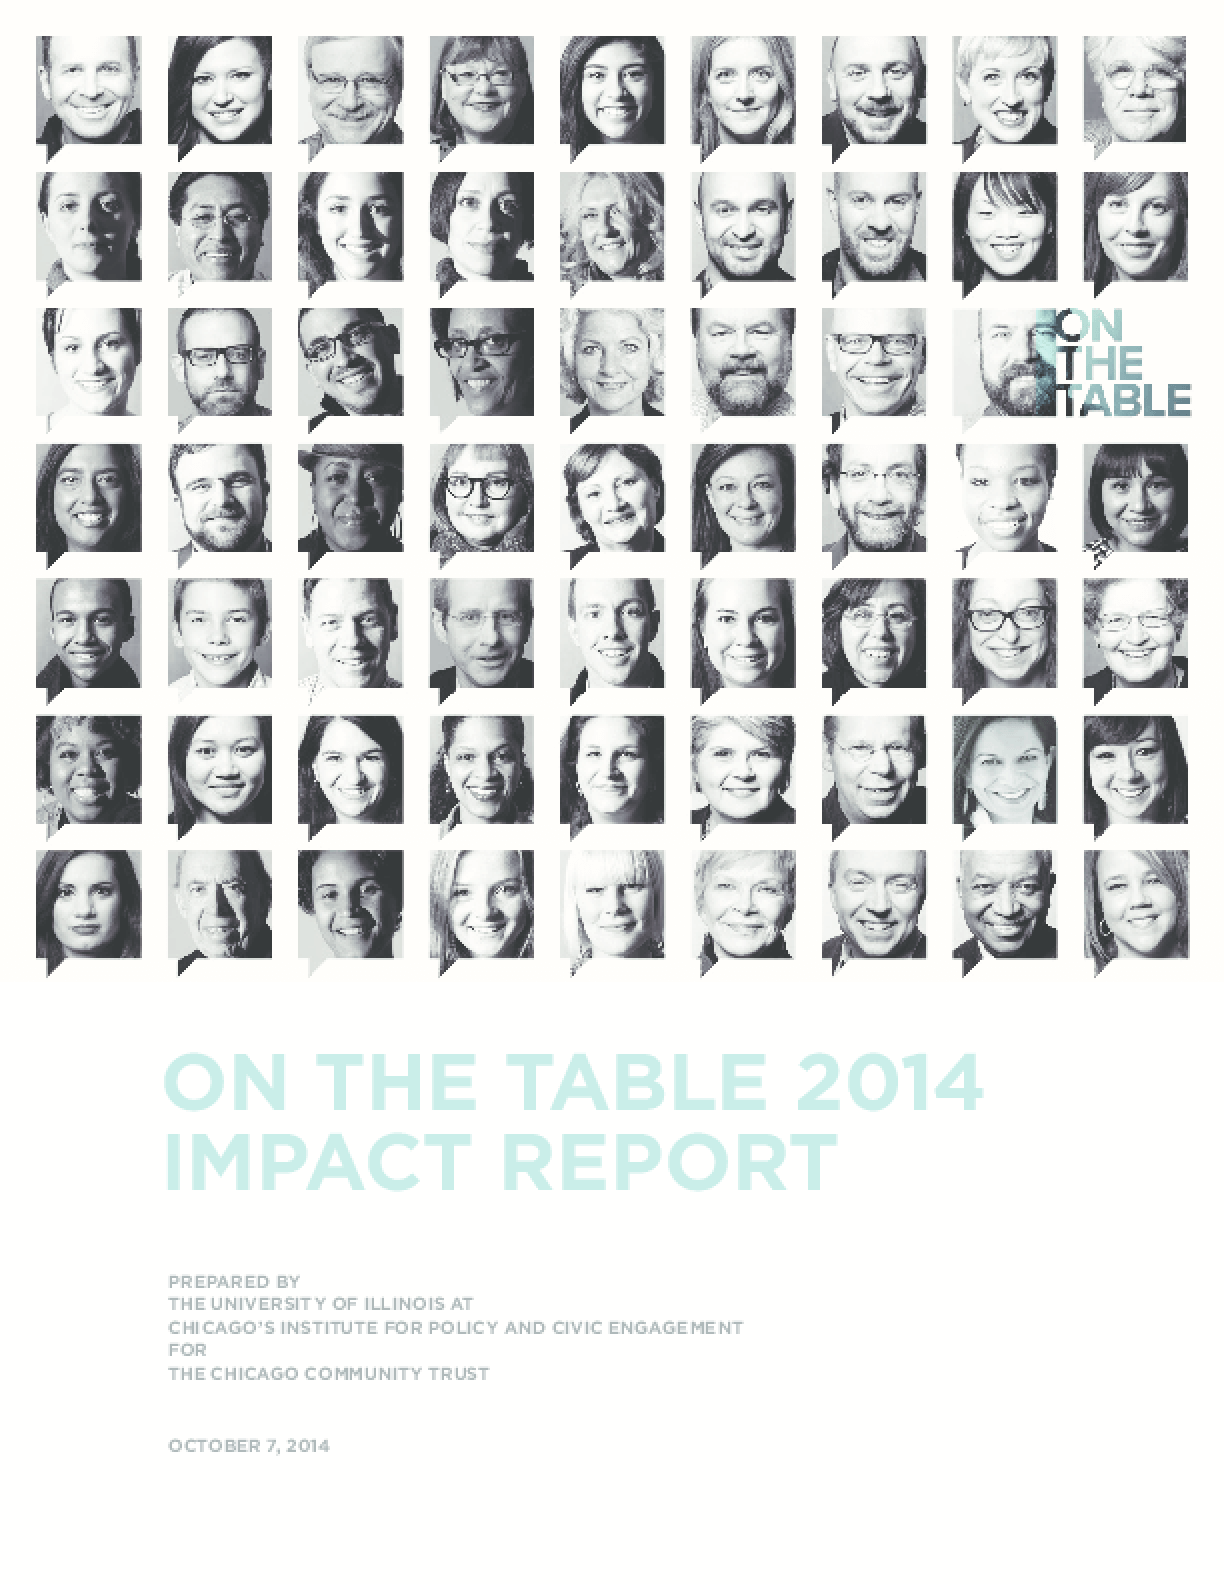 On The Table 2014 Impact Report